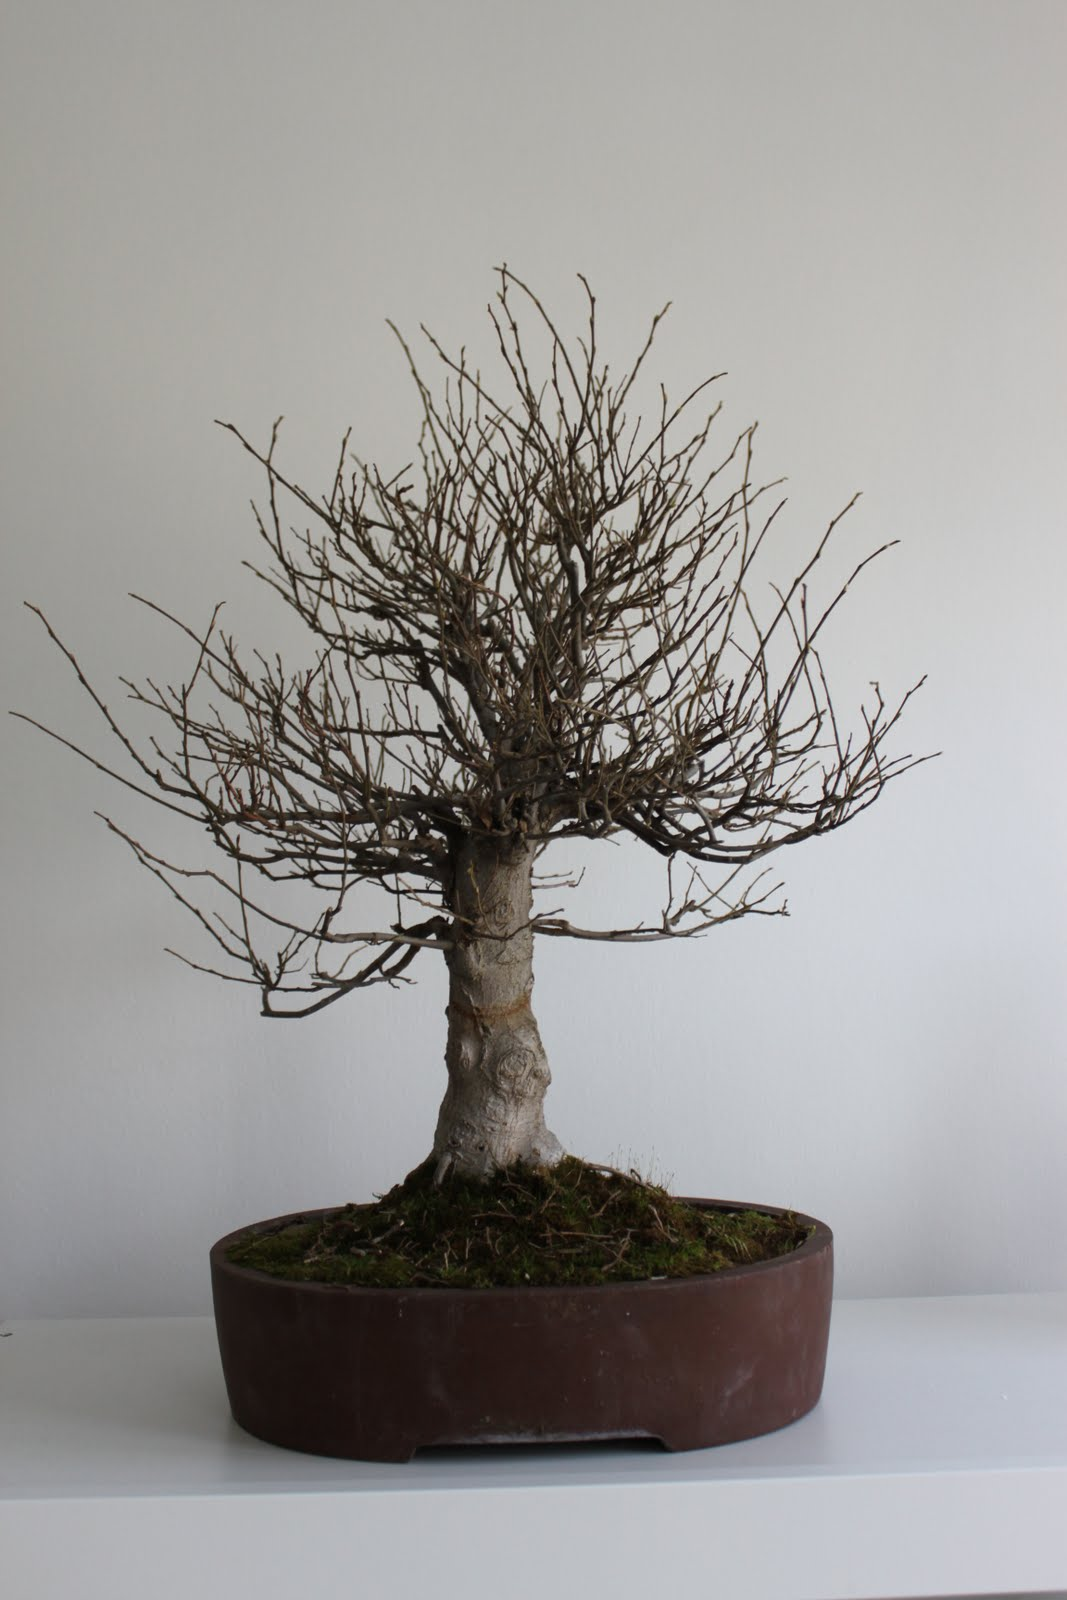 New Celtis Sinensis Tree Kenneth Olsens Bonsai Blog Wiring Lesson Front Of Before Any Work Was Done Will Be Changed Slightly